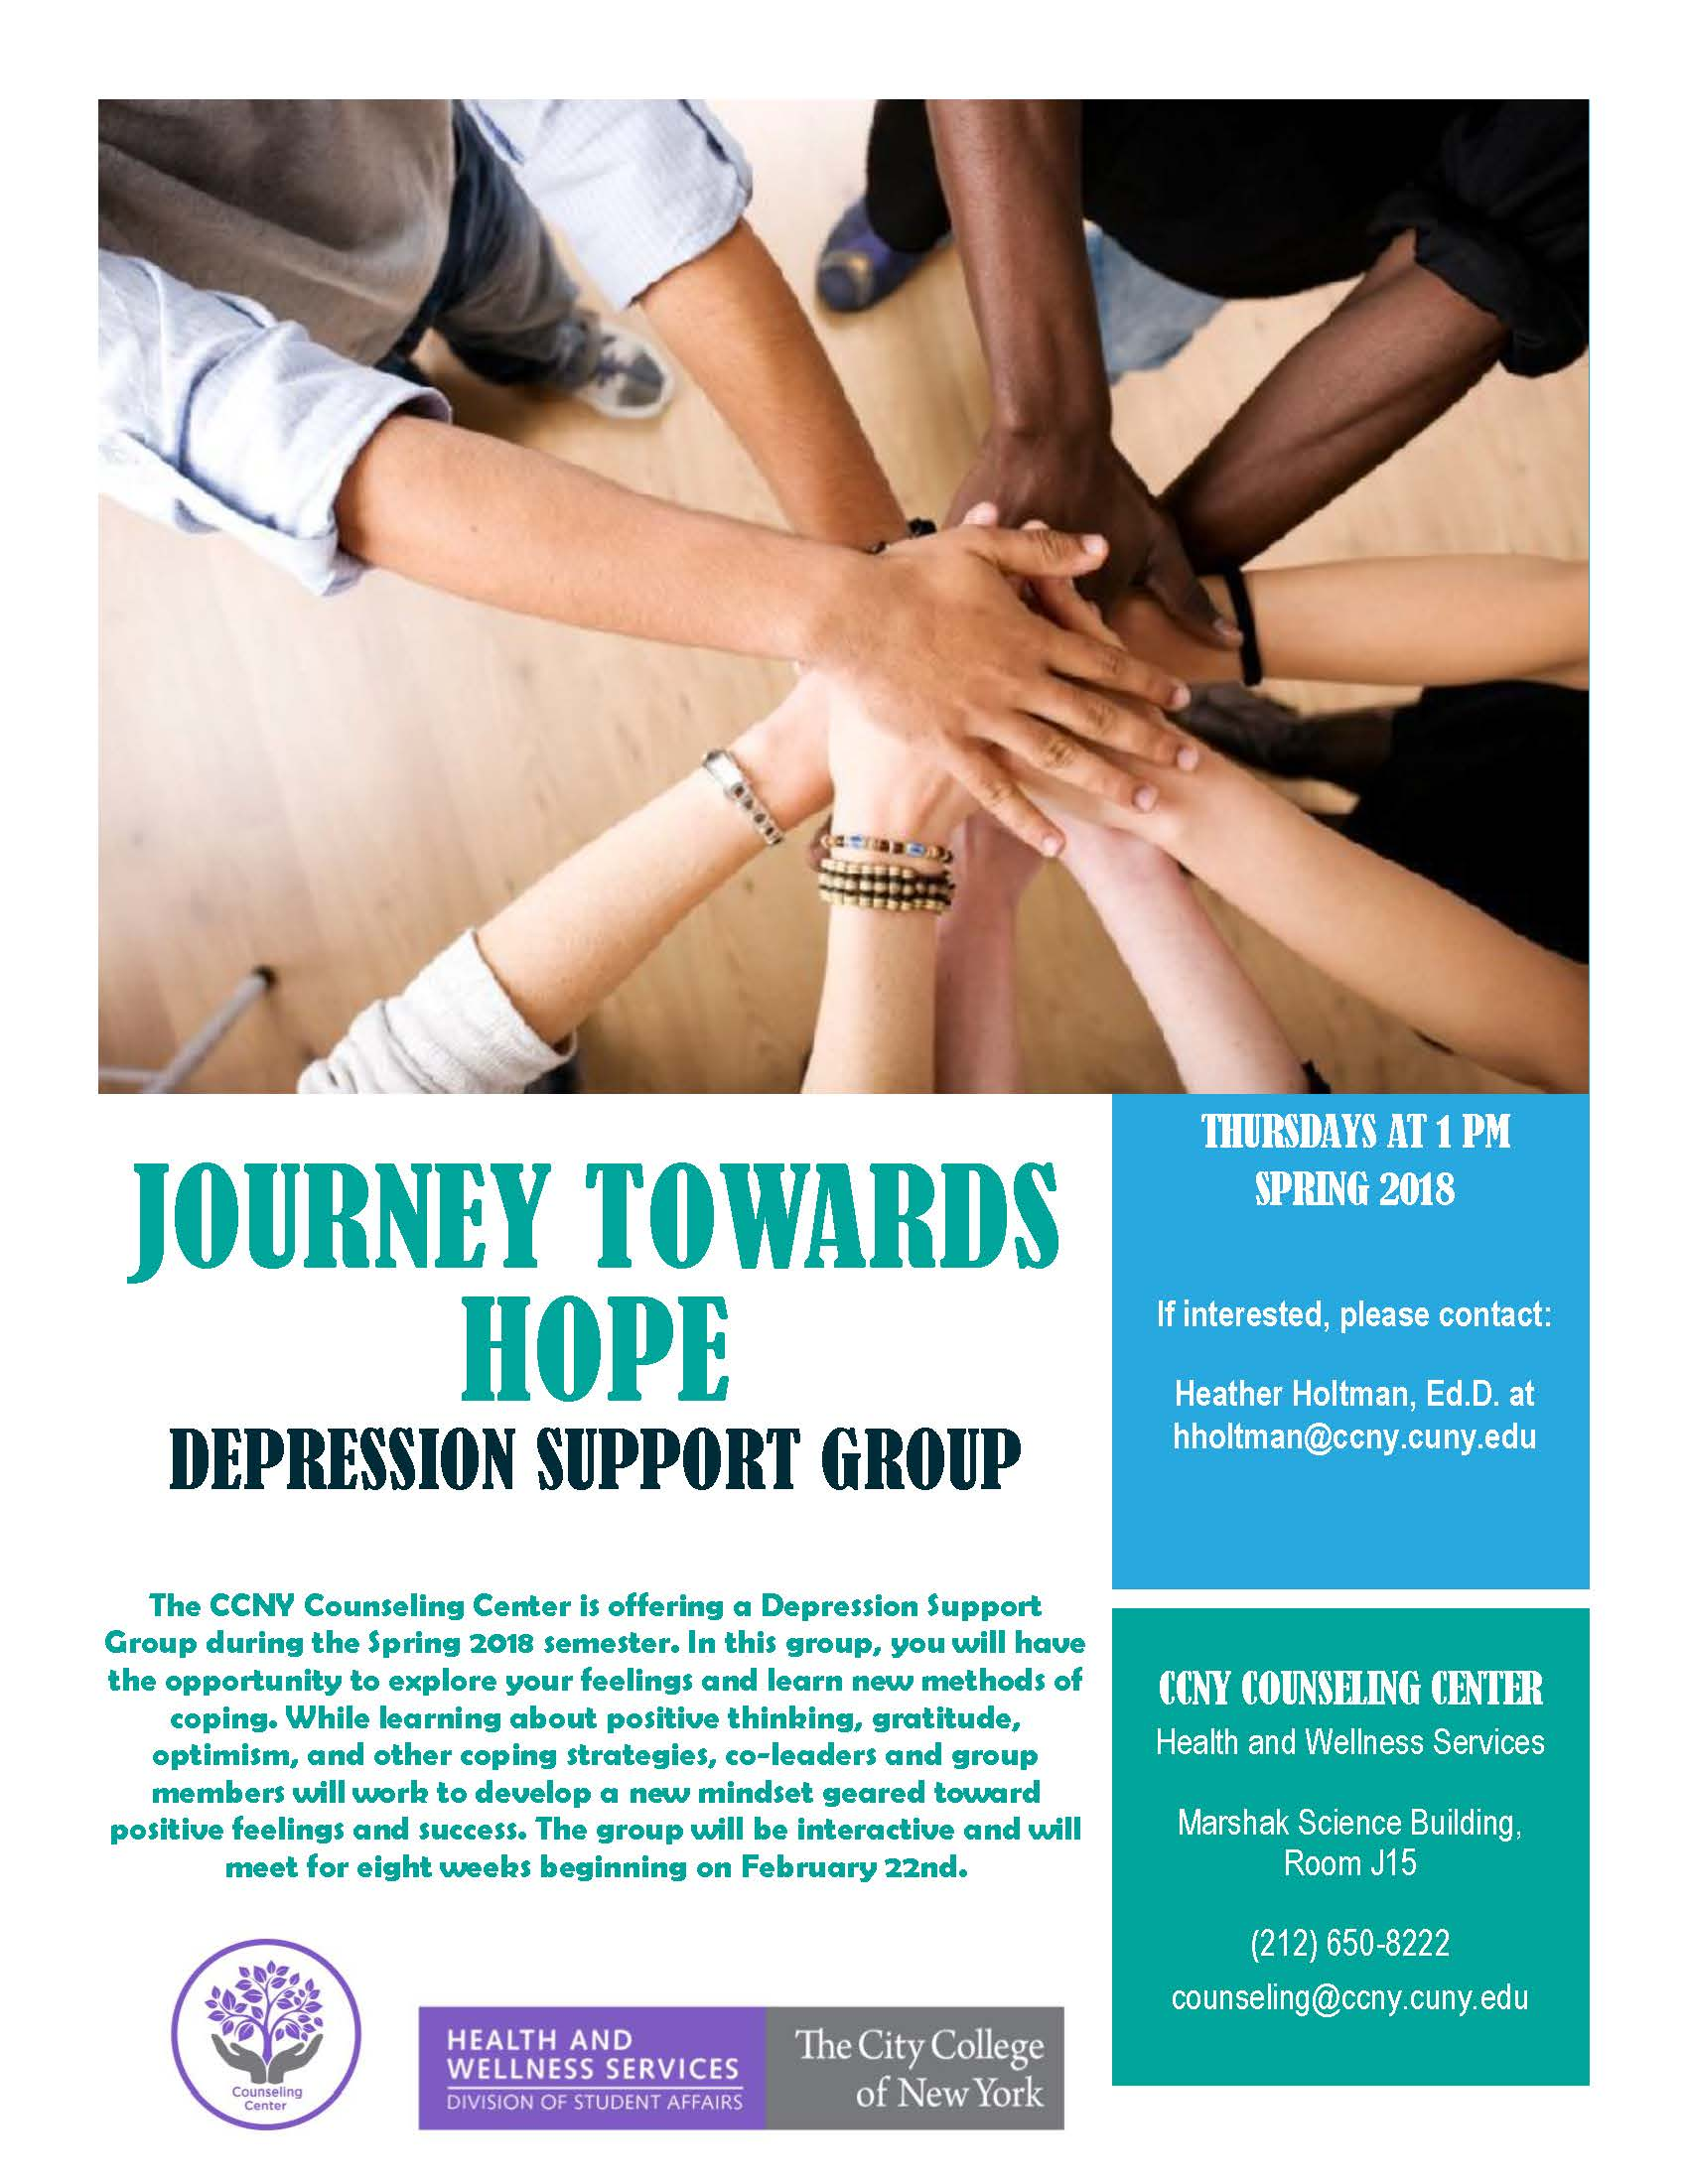 Depression Support Group Flyer - Spring 2018